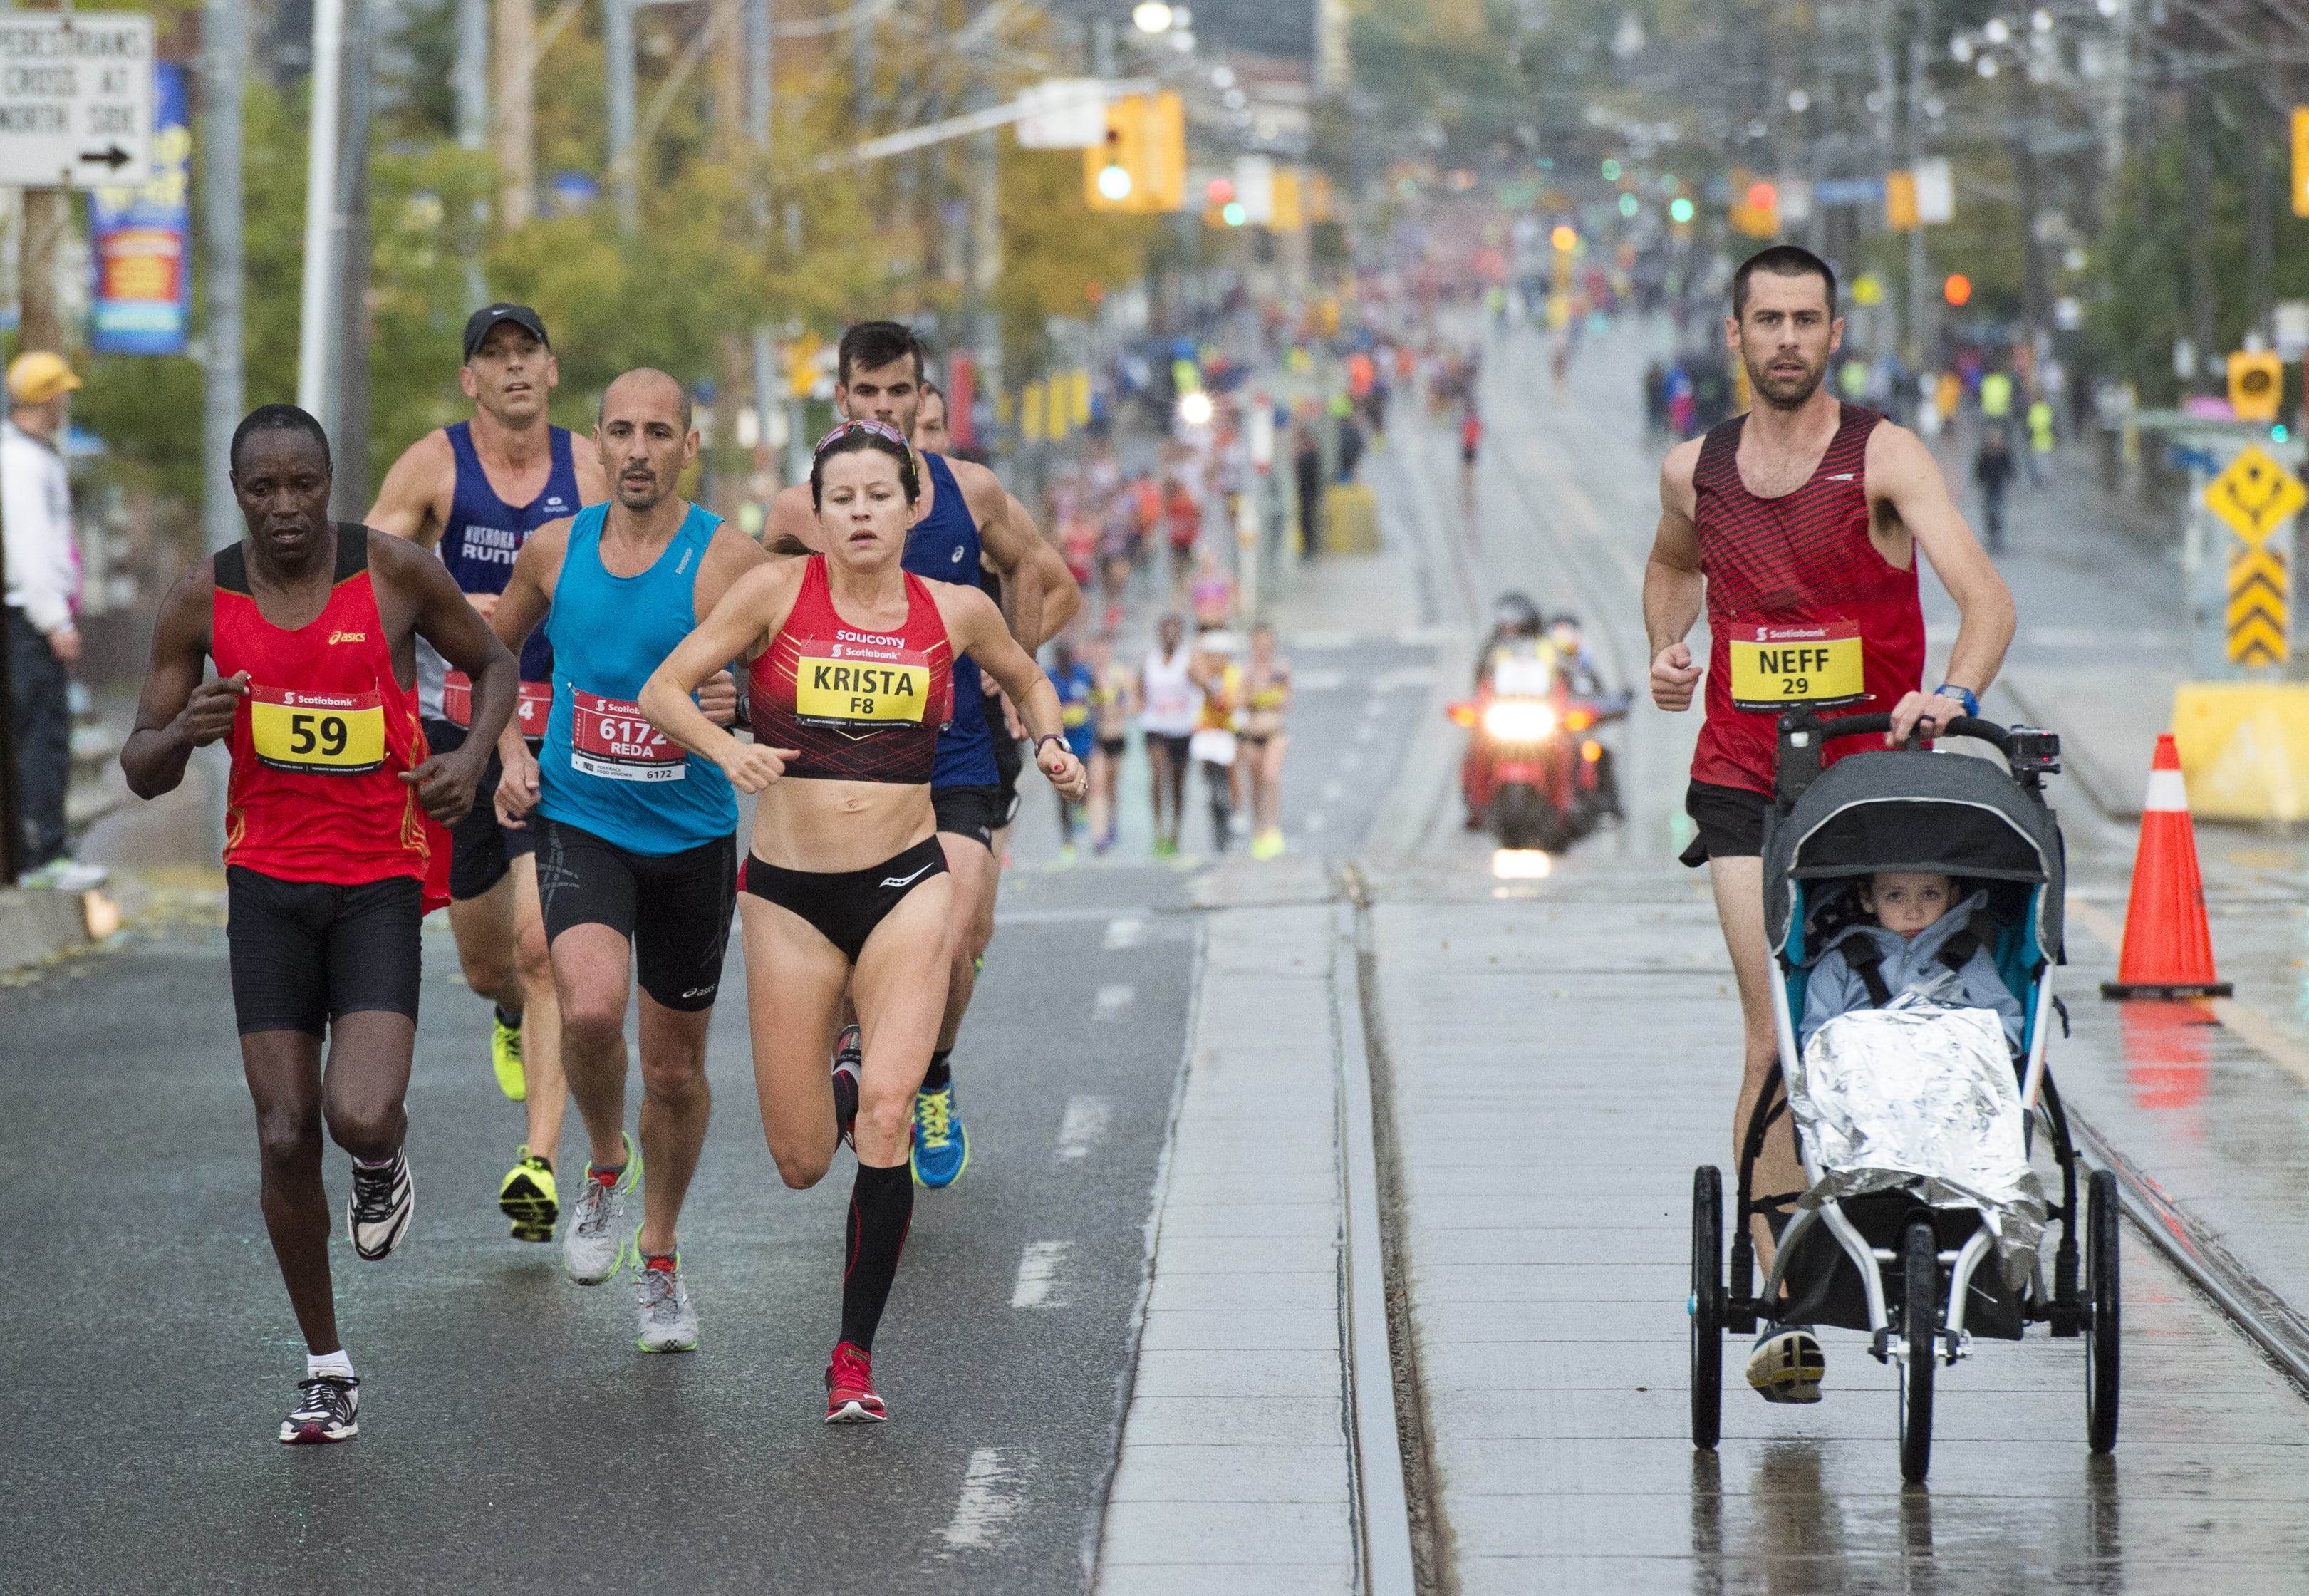 stwm16fg50-photo-credit-canada-running-series-min